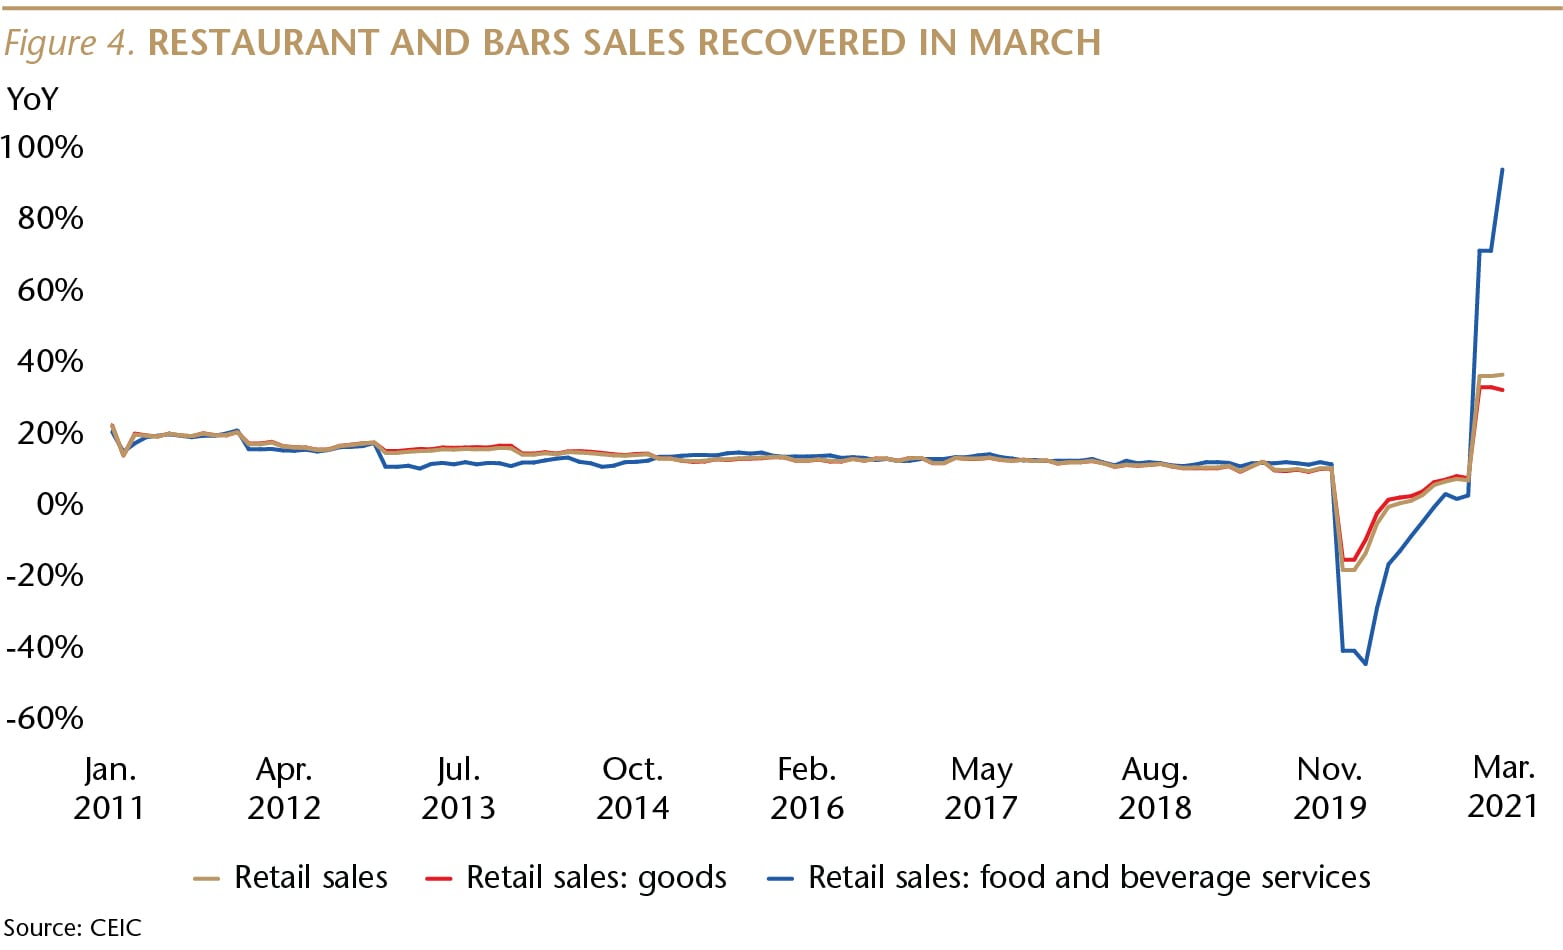 SI075_Figure 4_Restaurant and Bar Sales Recovered_WEB-01-min.jpg